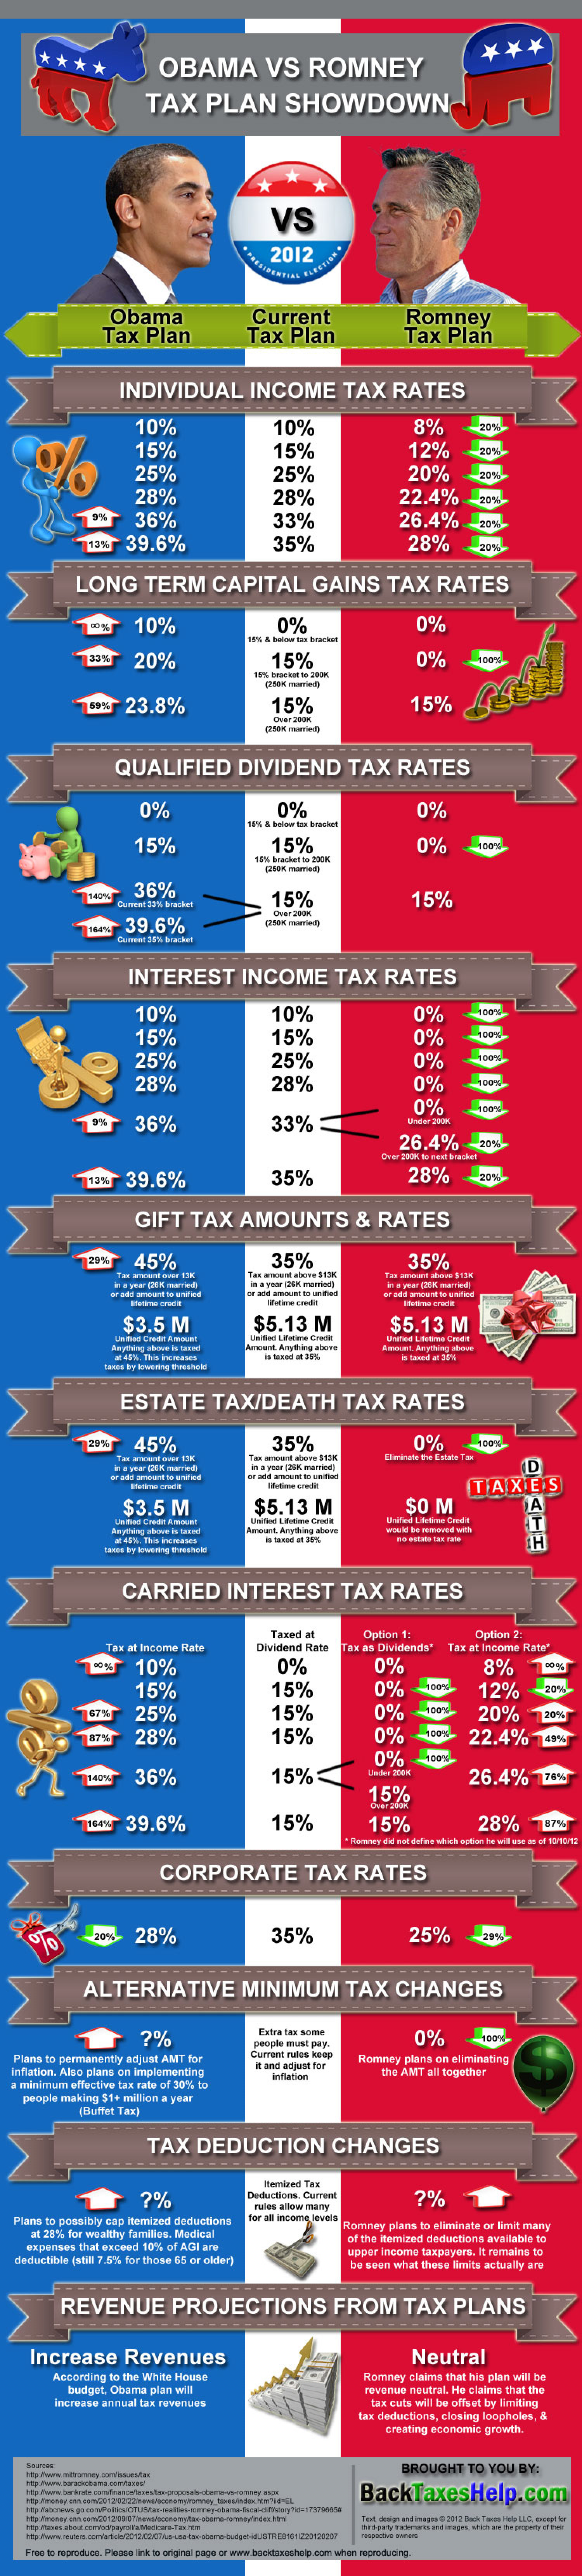 Obama vs. Romney Tax Plan Showdown Infographic